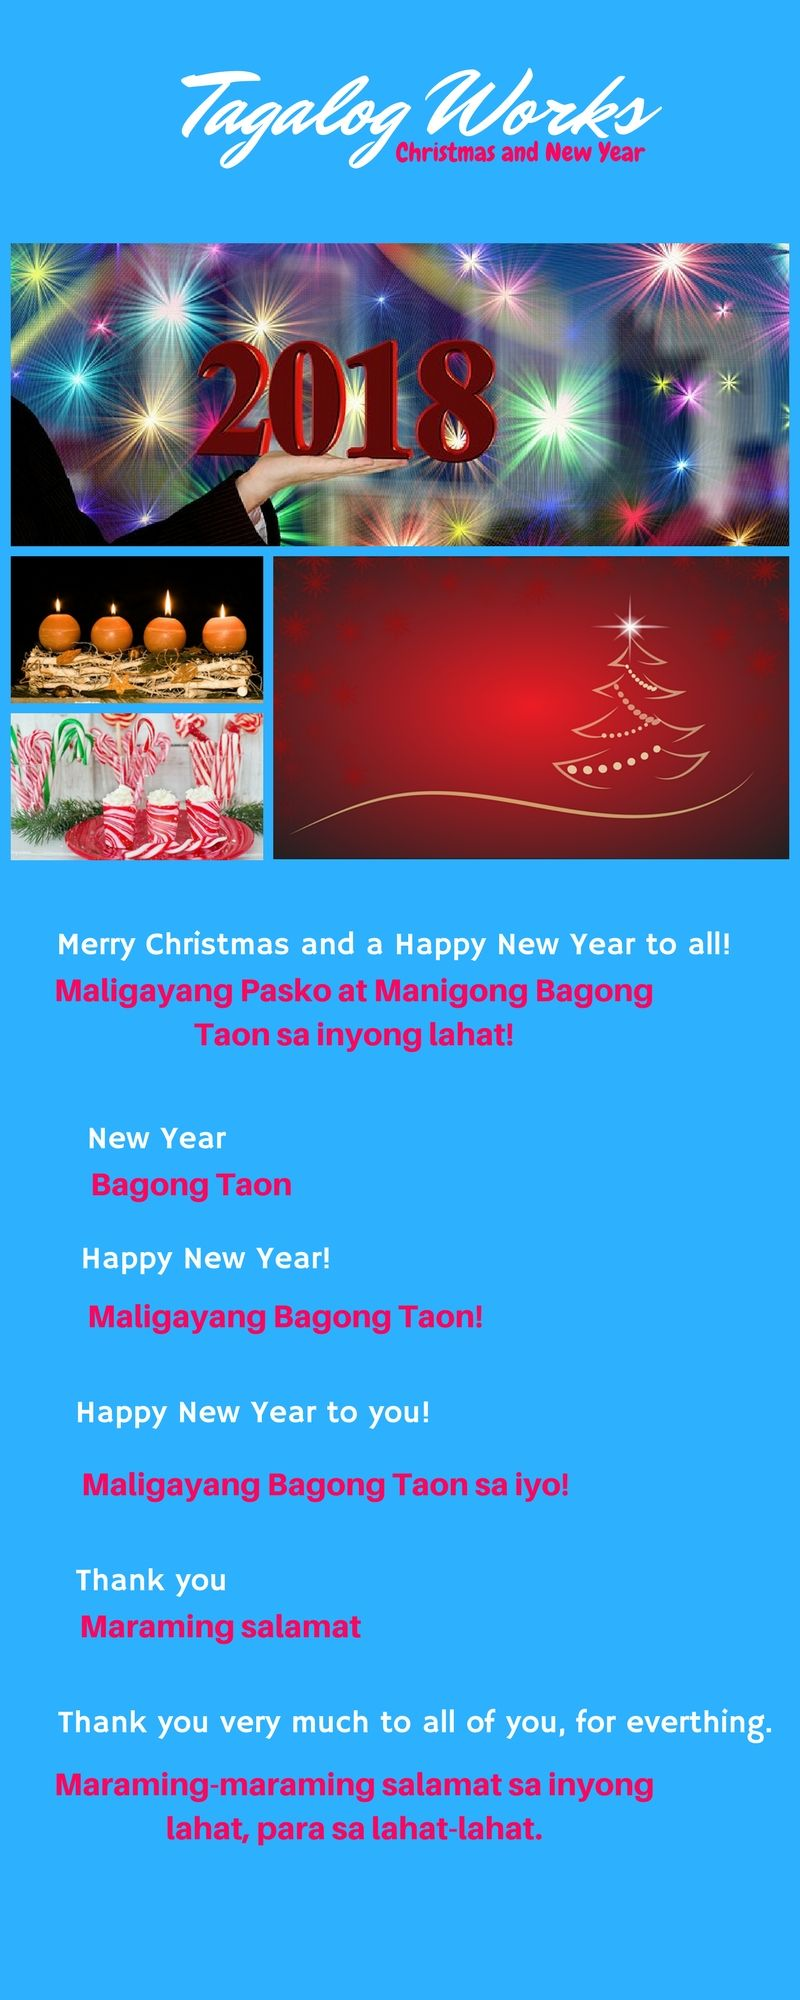 Christmas And New Year Greetings In Tagalog Learning Tagalog